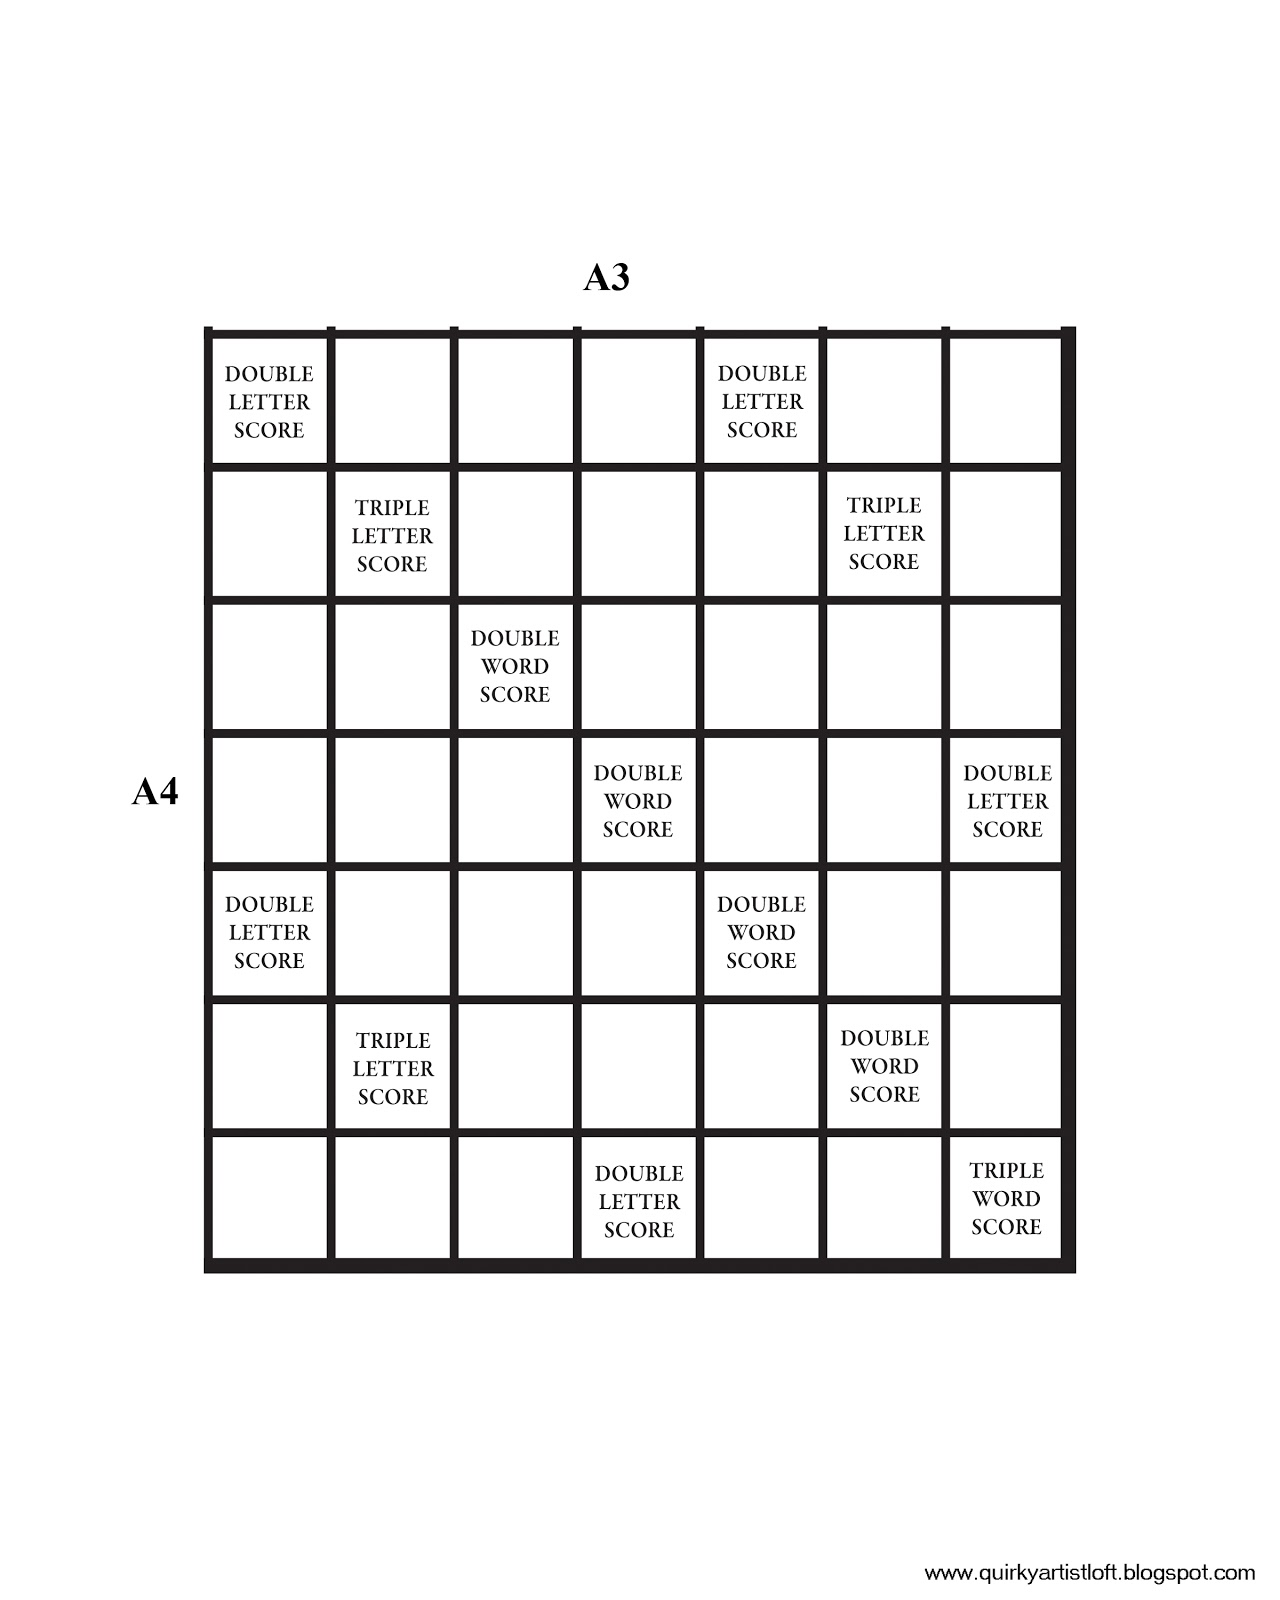 graphic relating to Printable Scrabble Board Template known as Quirky Artist Loft: Do-it-yourself Printable Scrabble Board